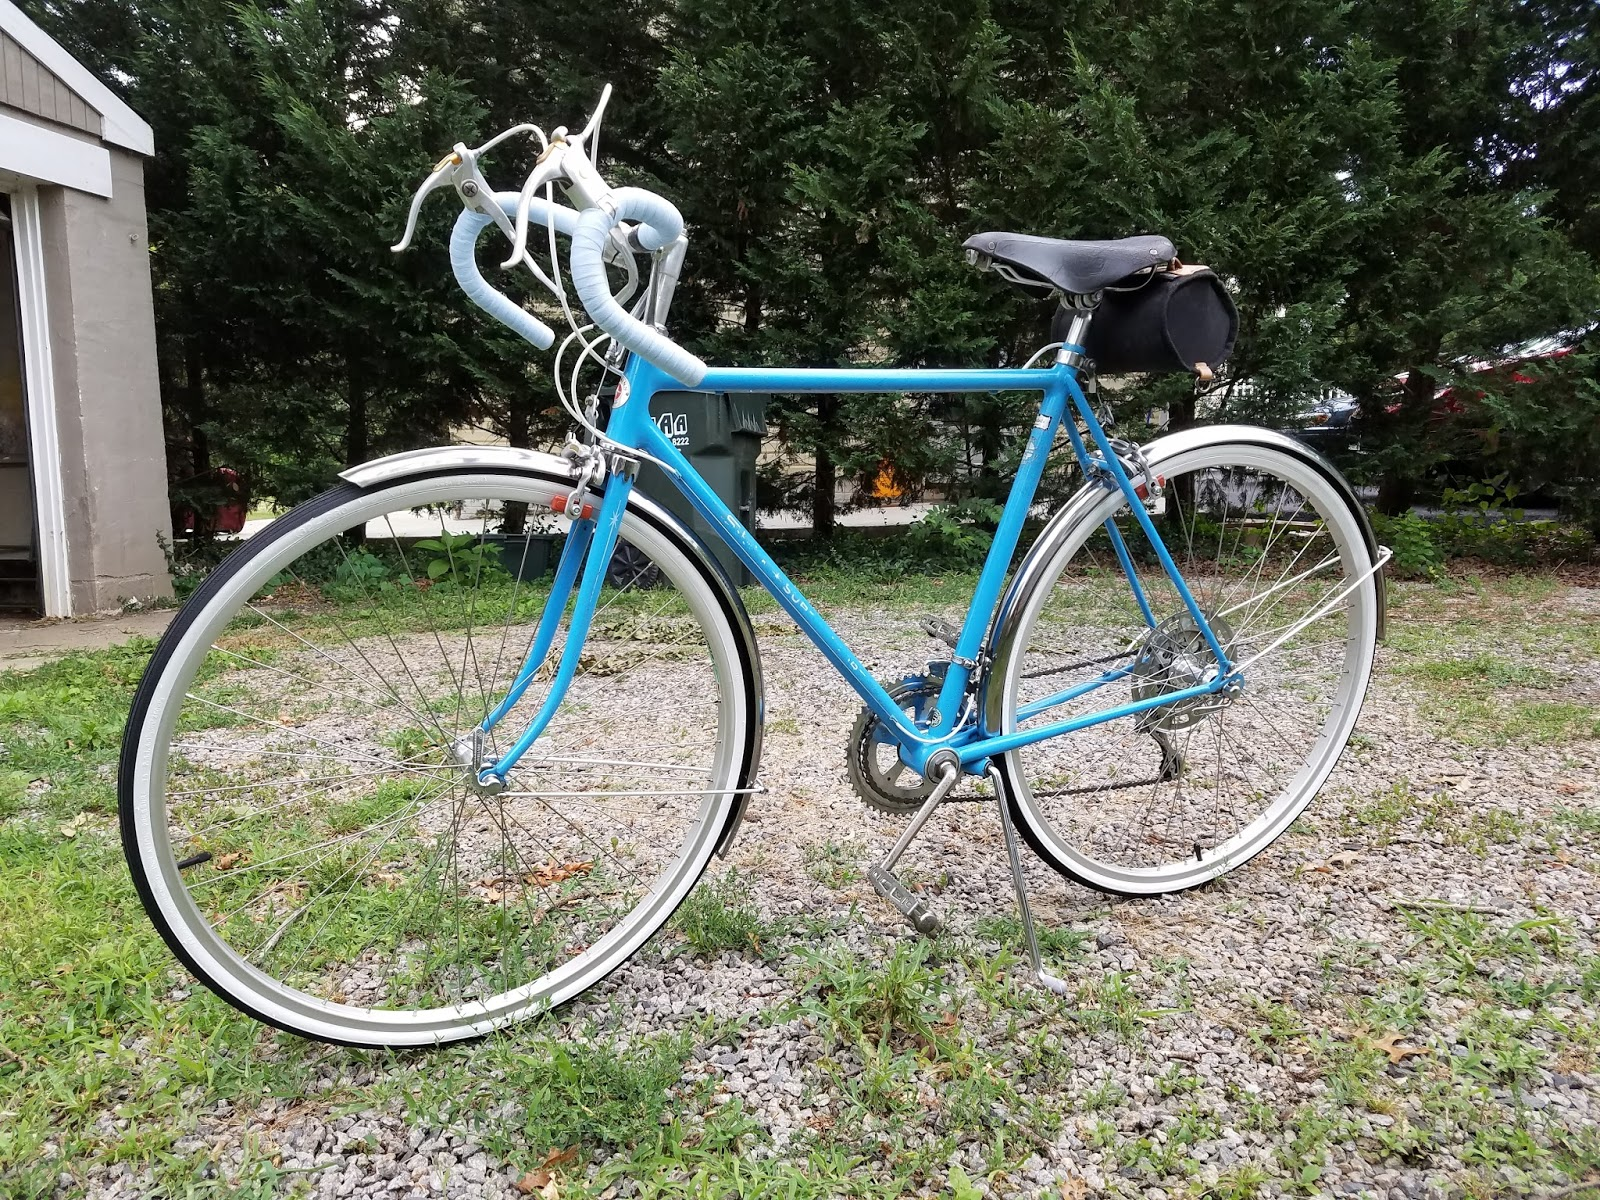 eaca3f42a8c Here's my latest project: a 1972 Schwinn Super Sport 10-speed. This bicycle  is certainly a generation or two later than the 1940s-era 3-speed Schwinns  I ...